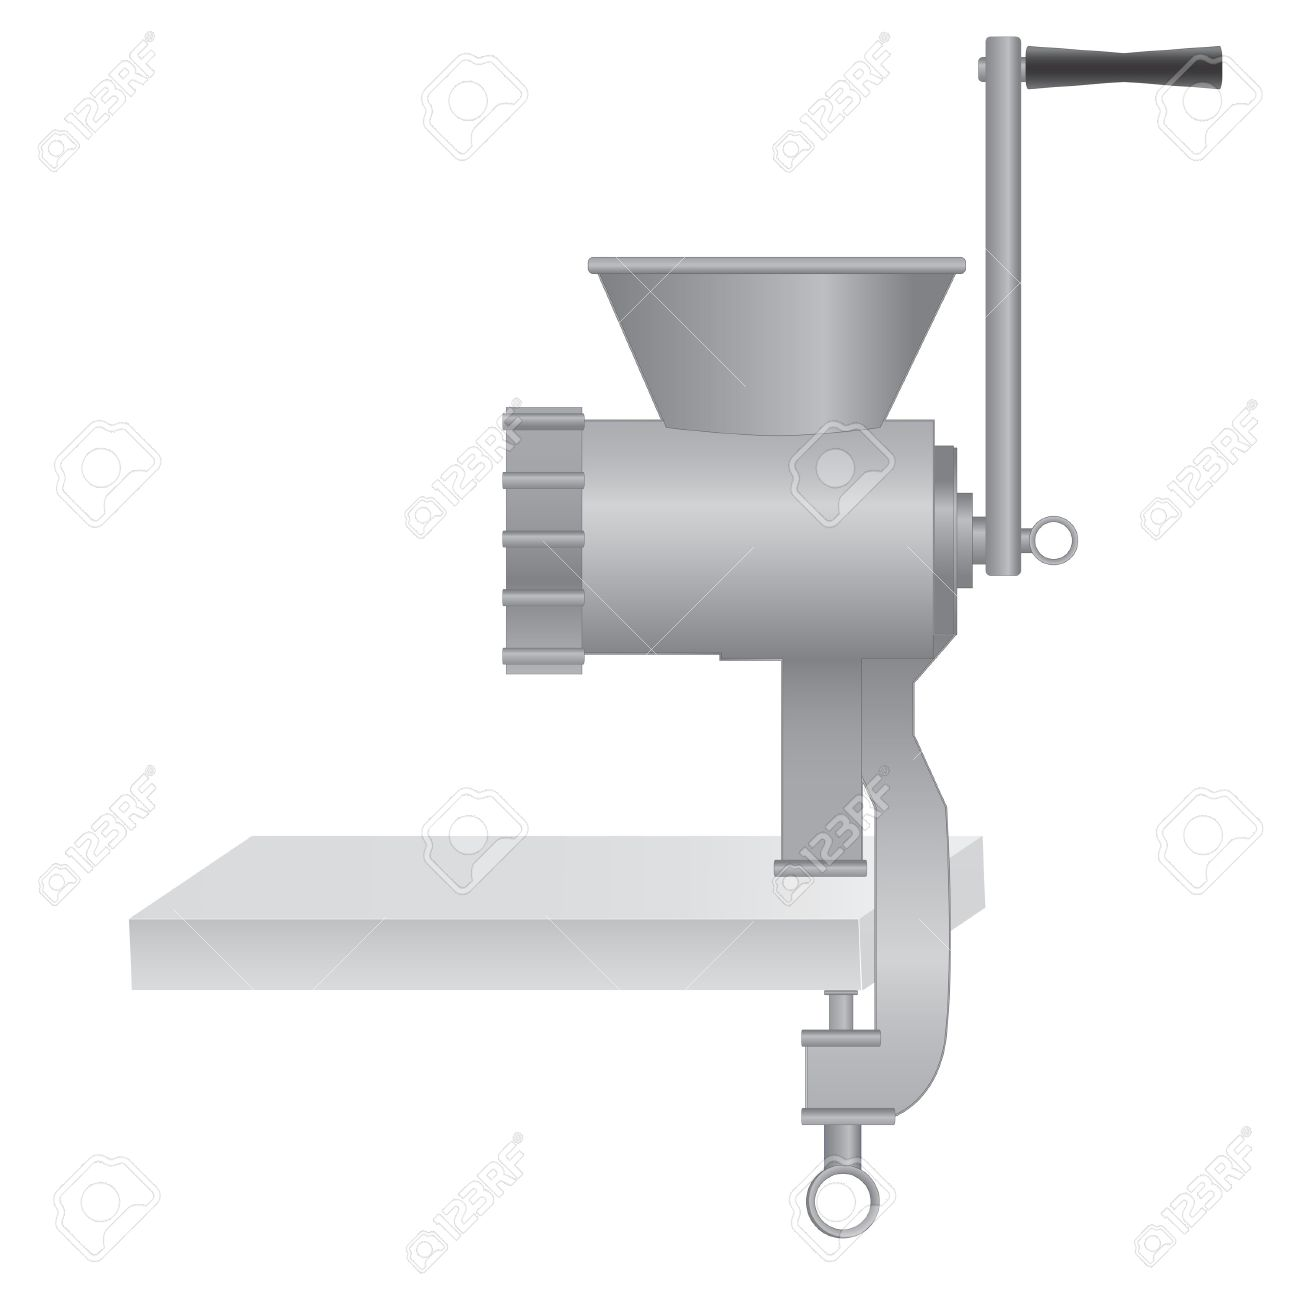 Metallic Classic Meat Grinder / Chopper On Table. Vector.